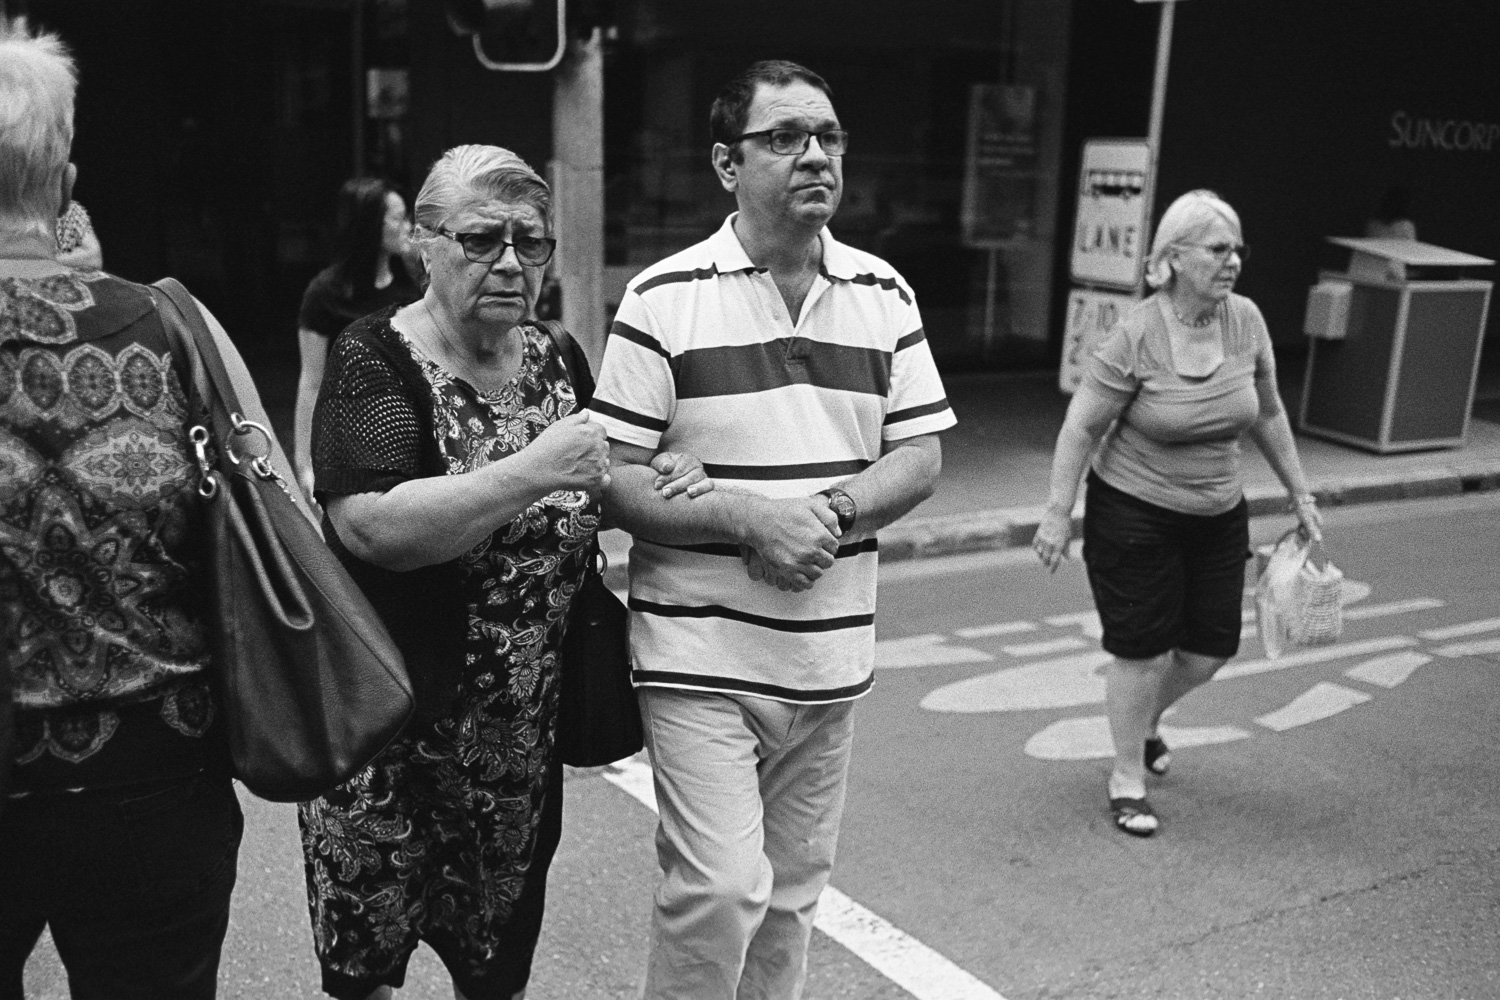 AA010-Nick-Bedford,-Photographer-Black and White, Brisbane, Film, Film Scanning, Kodak Tri-X 400, Nikkor 35mm F2 AI-s, Nikon FA, Pakon F135+, Rodinal, Street Photography, Summer.jpg